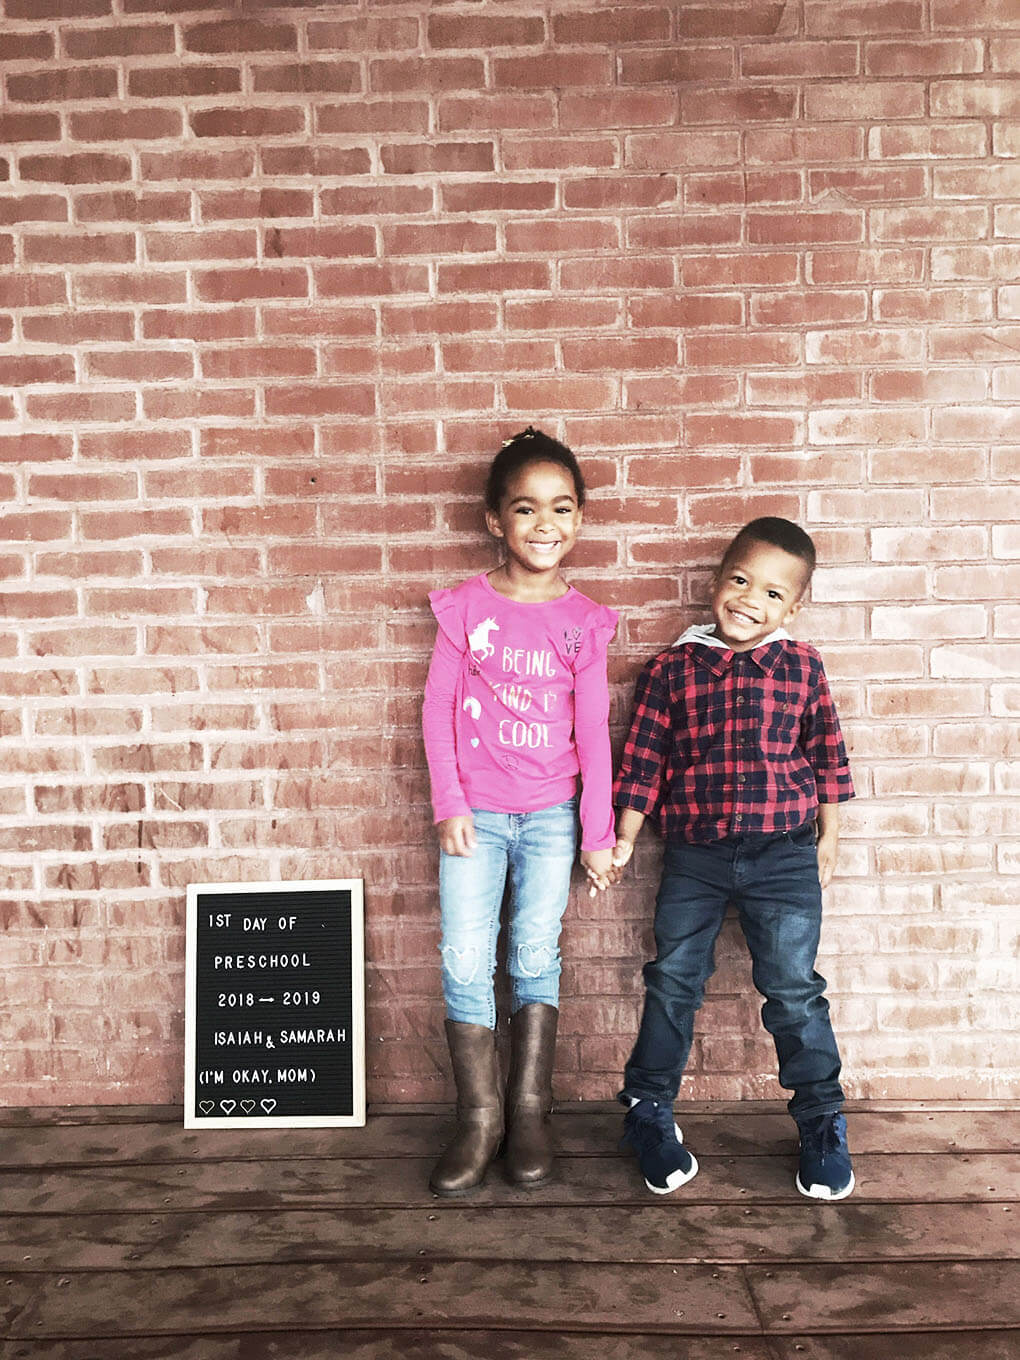 Preschool Mom www.sarahkayhoffman.com Samarah and Isaiah Montessori first day #preschool #lifestyleblogger #firstdayofschool